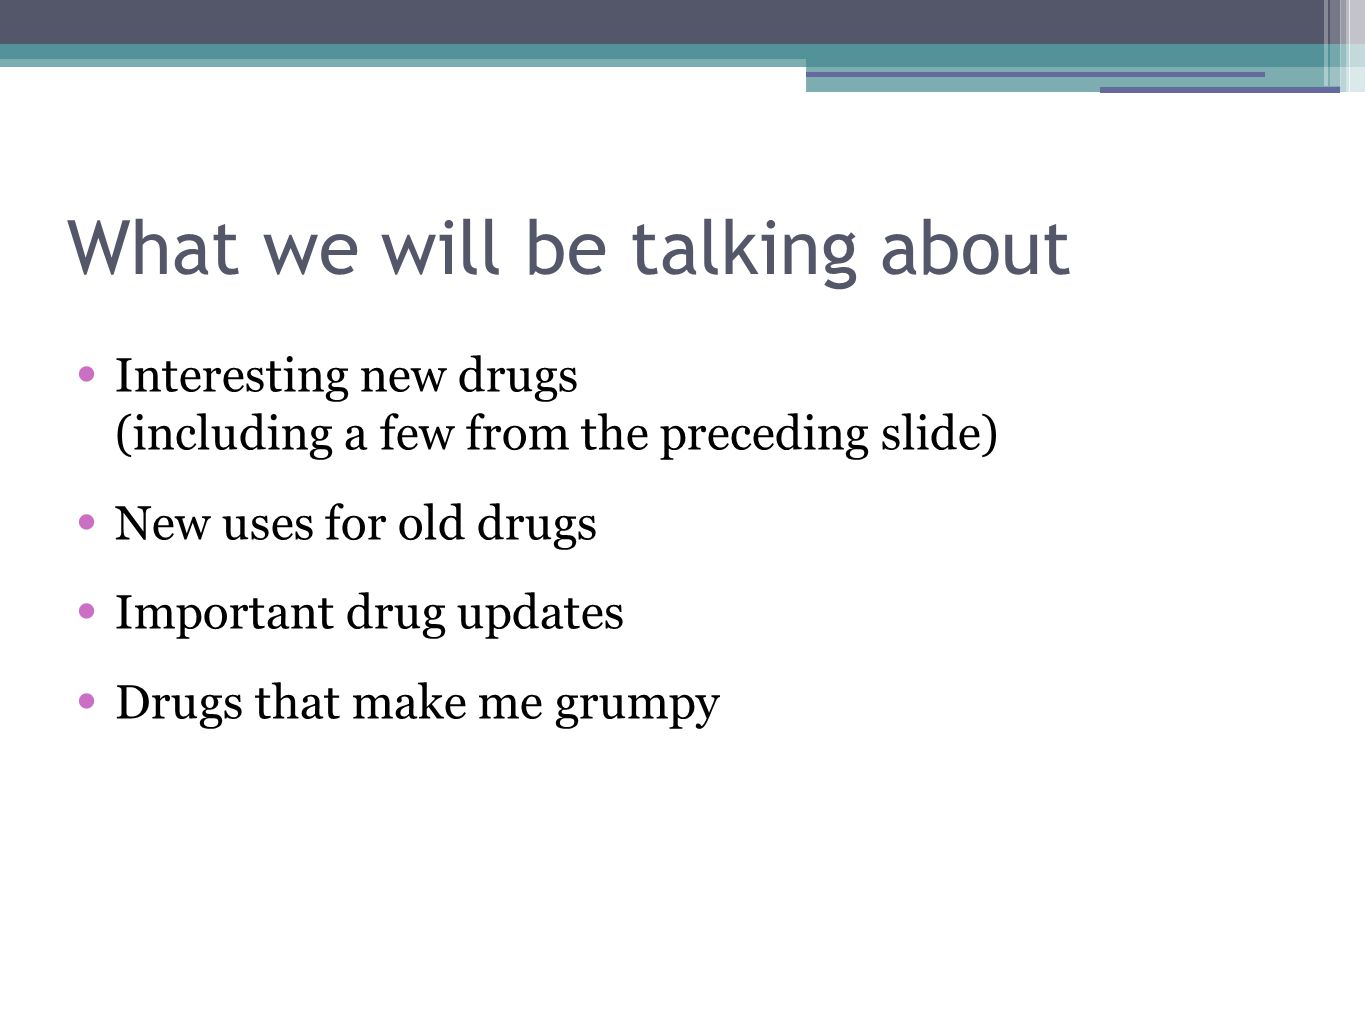 What we will be talking about Interesting new drugs (including a few from the preceding slide) New uses for old drugs Important drug updates Drugs that make me grumpy